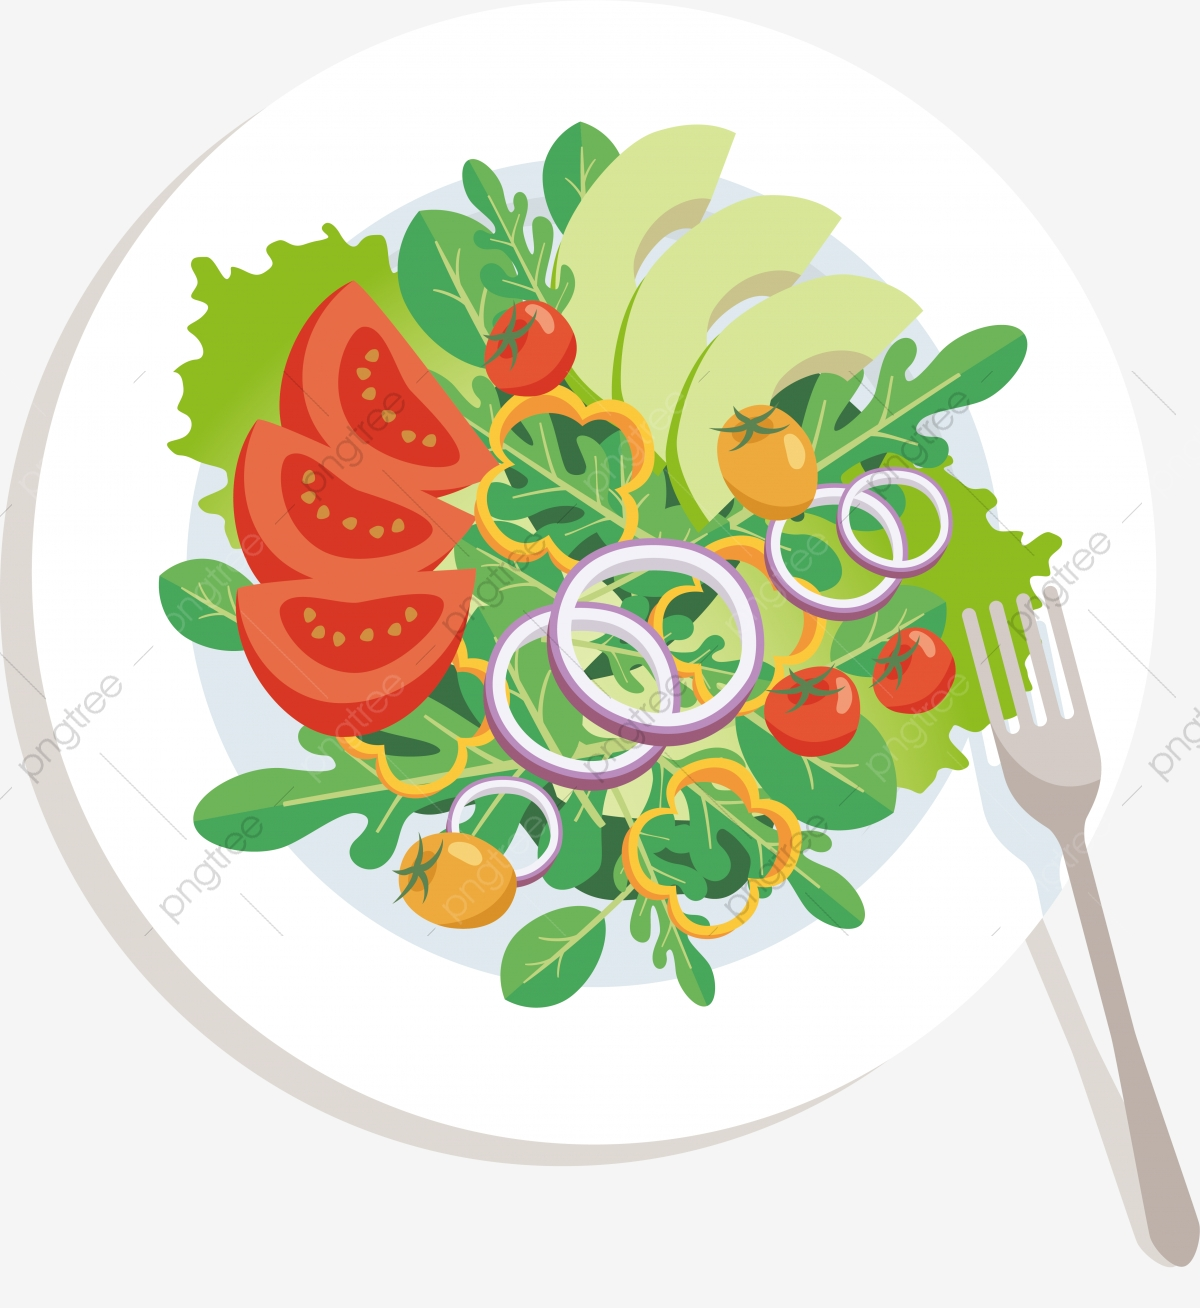 Salad Vector Png - Olive Oil Salad Photography Lettuce, Western Food, Tomato ...